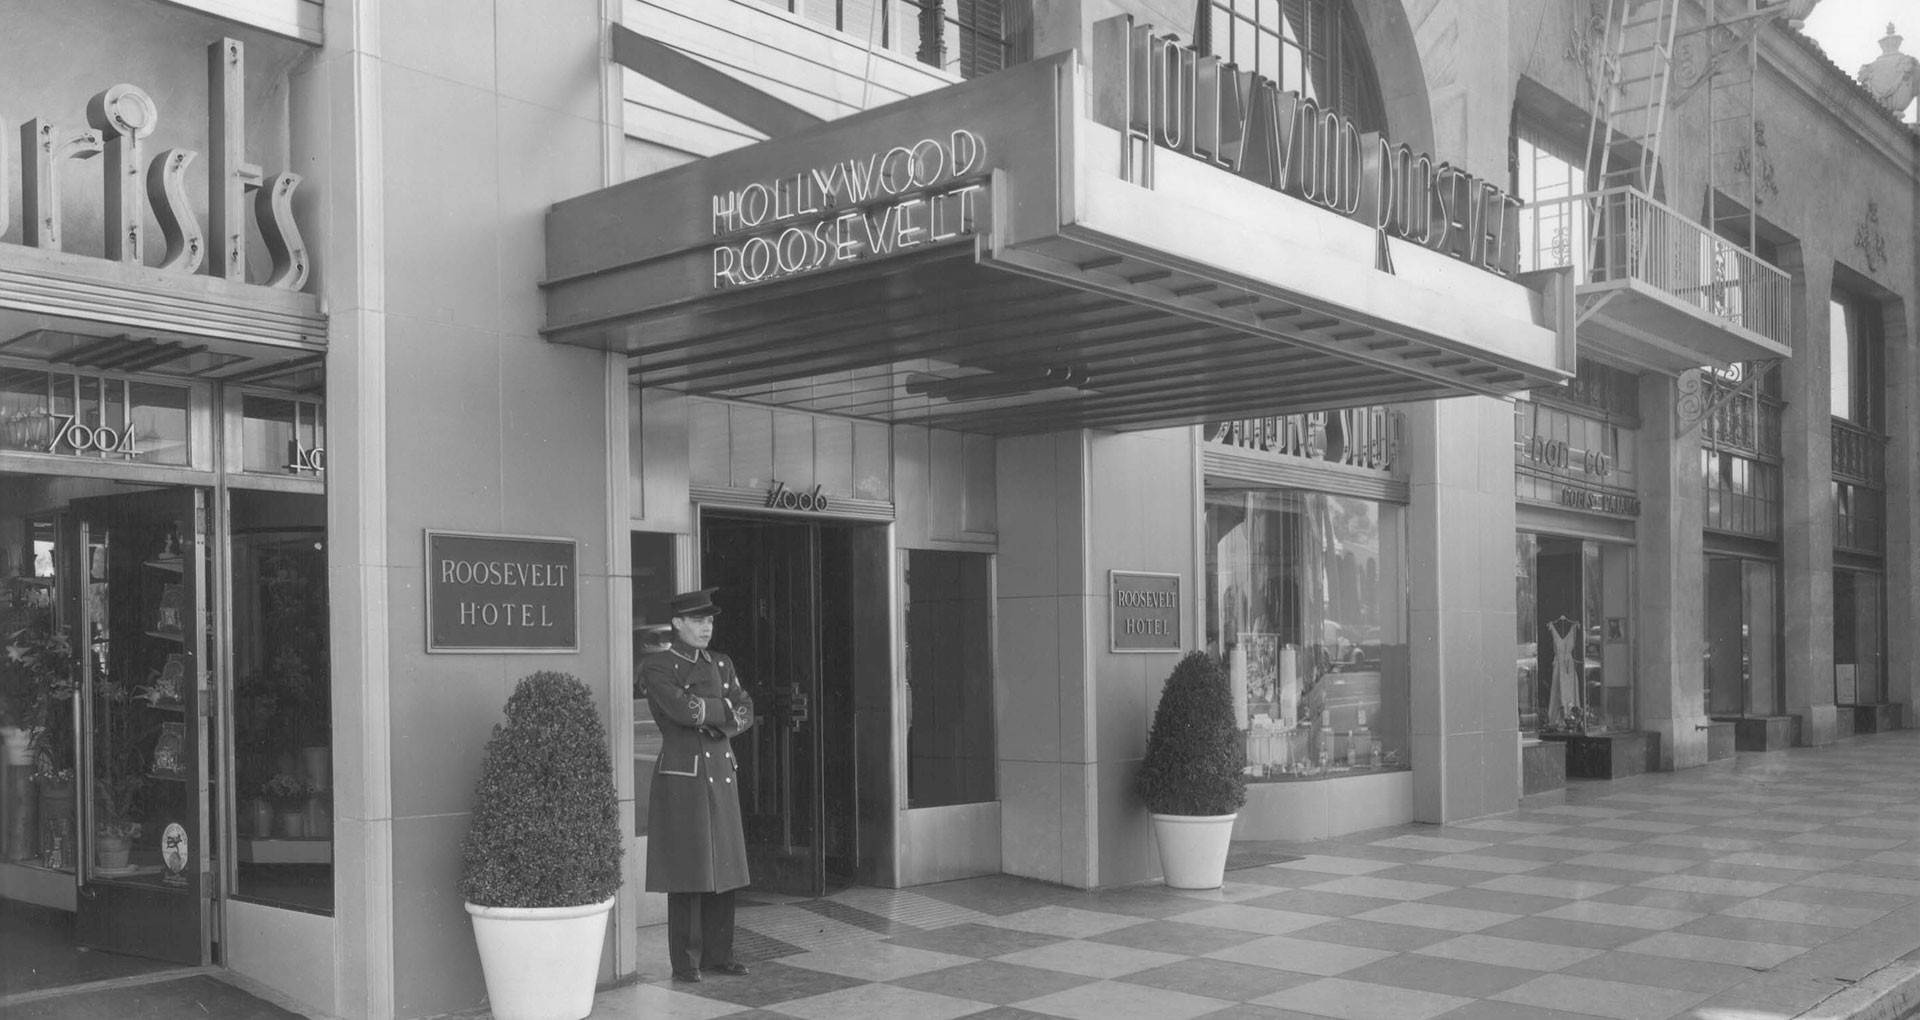 The entrance to the Hollywood Roosevelt Hotel as it appeared when it opened